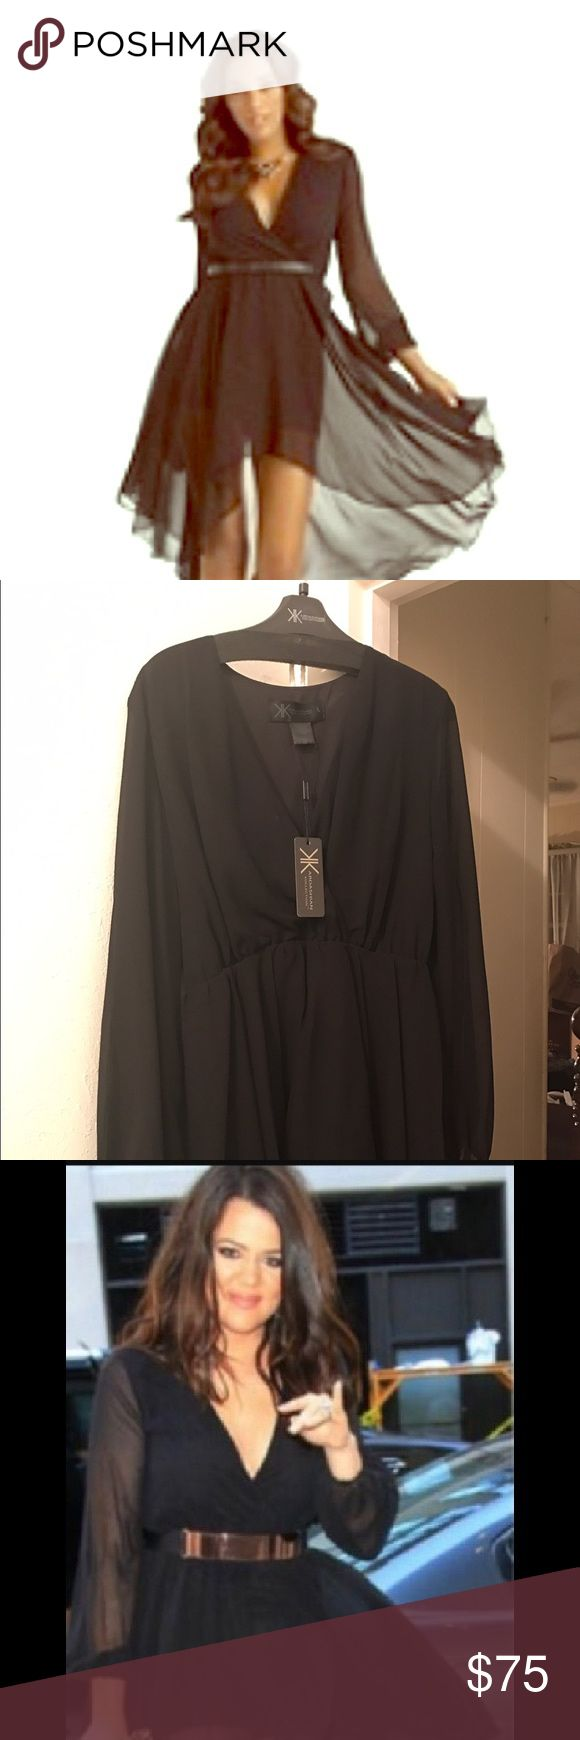 Kardashian Kollection hi low dress Black hi low dress with tags. Never worn Kardashian Kollection Dresses High Low